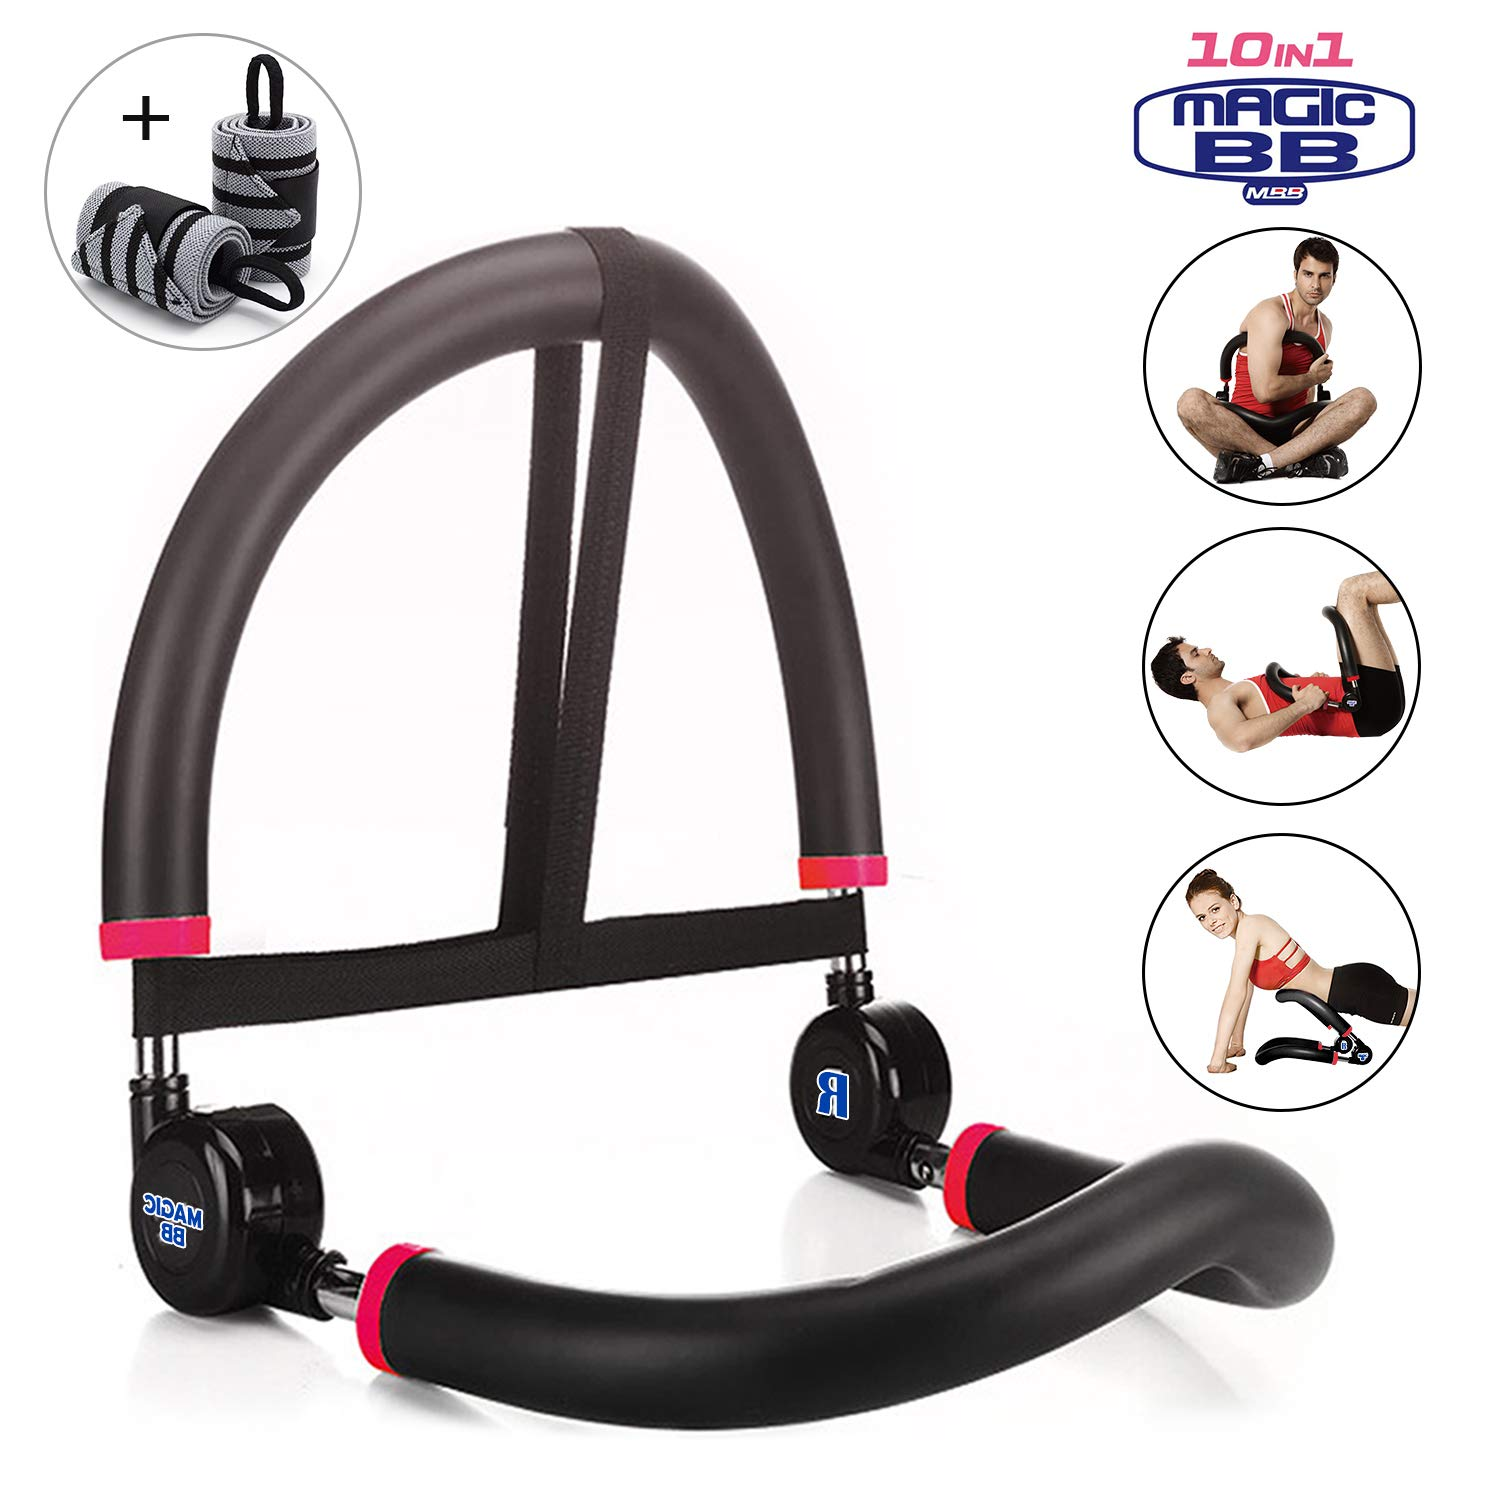 SYOSIN Abdominal Machine for Full Range of Motion Ab & Core Workouts, Home Fitness Equipment for Beginners (101-BK-WW)